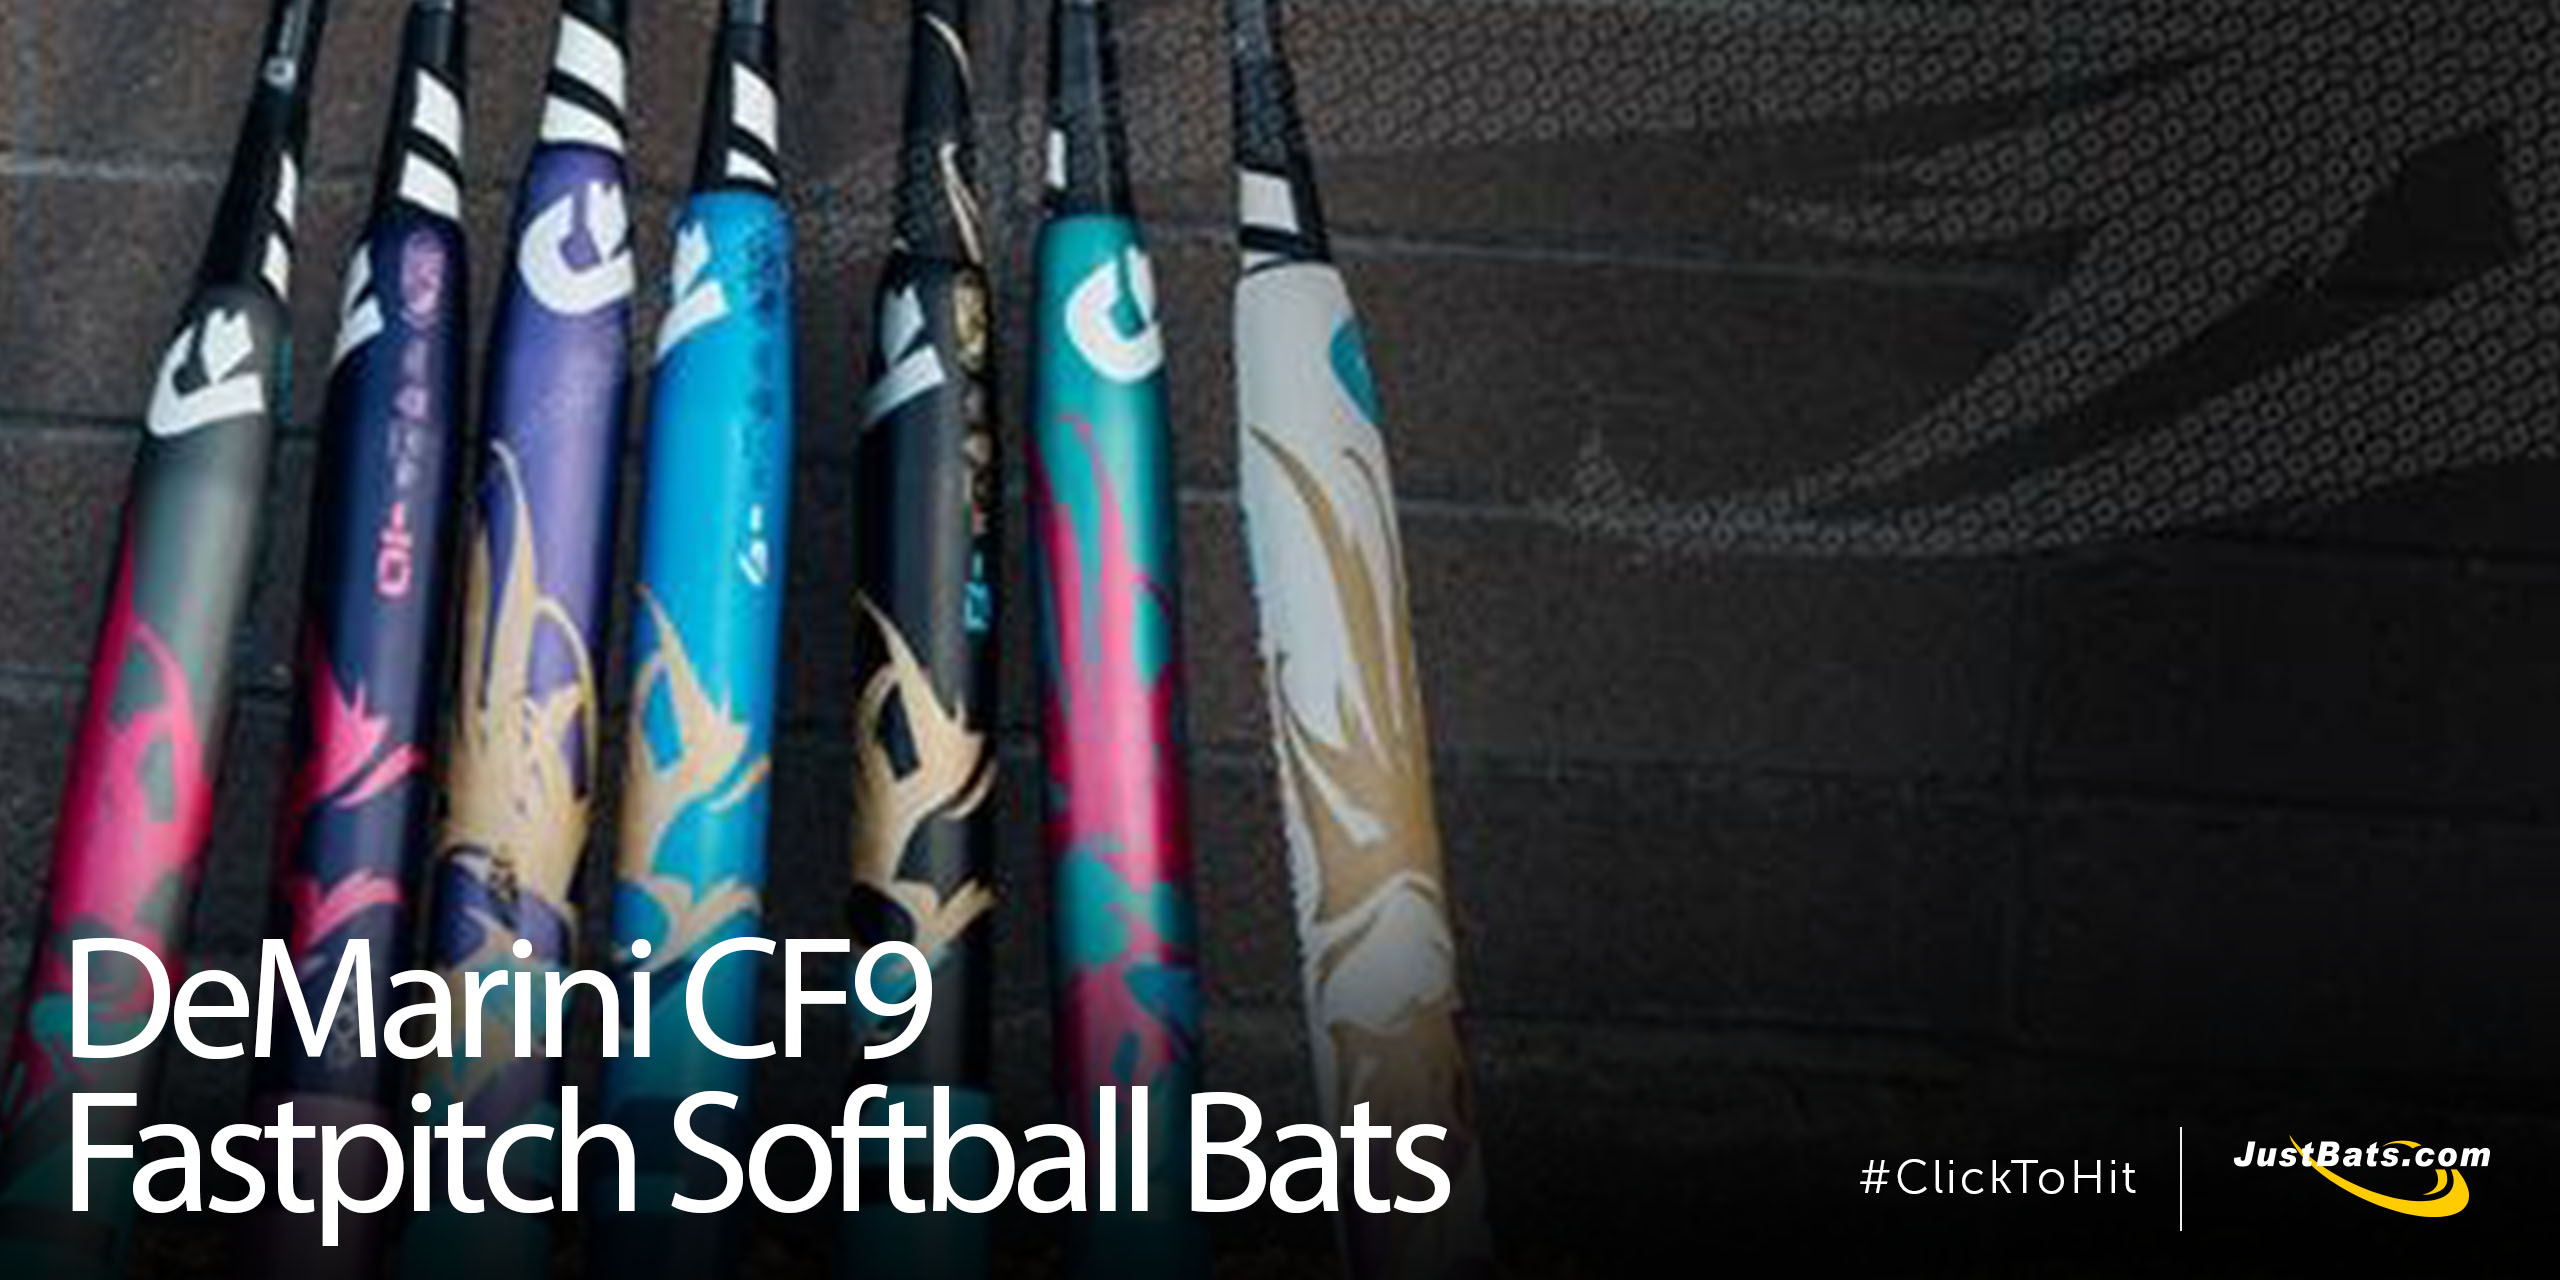 DeMarini CF9 - Blog.jpg